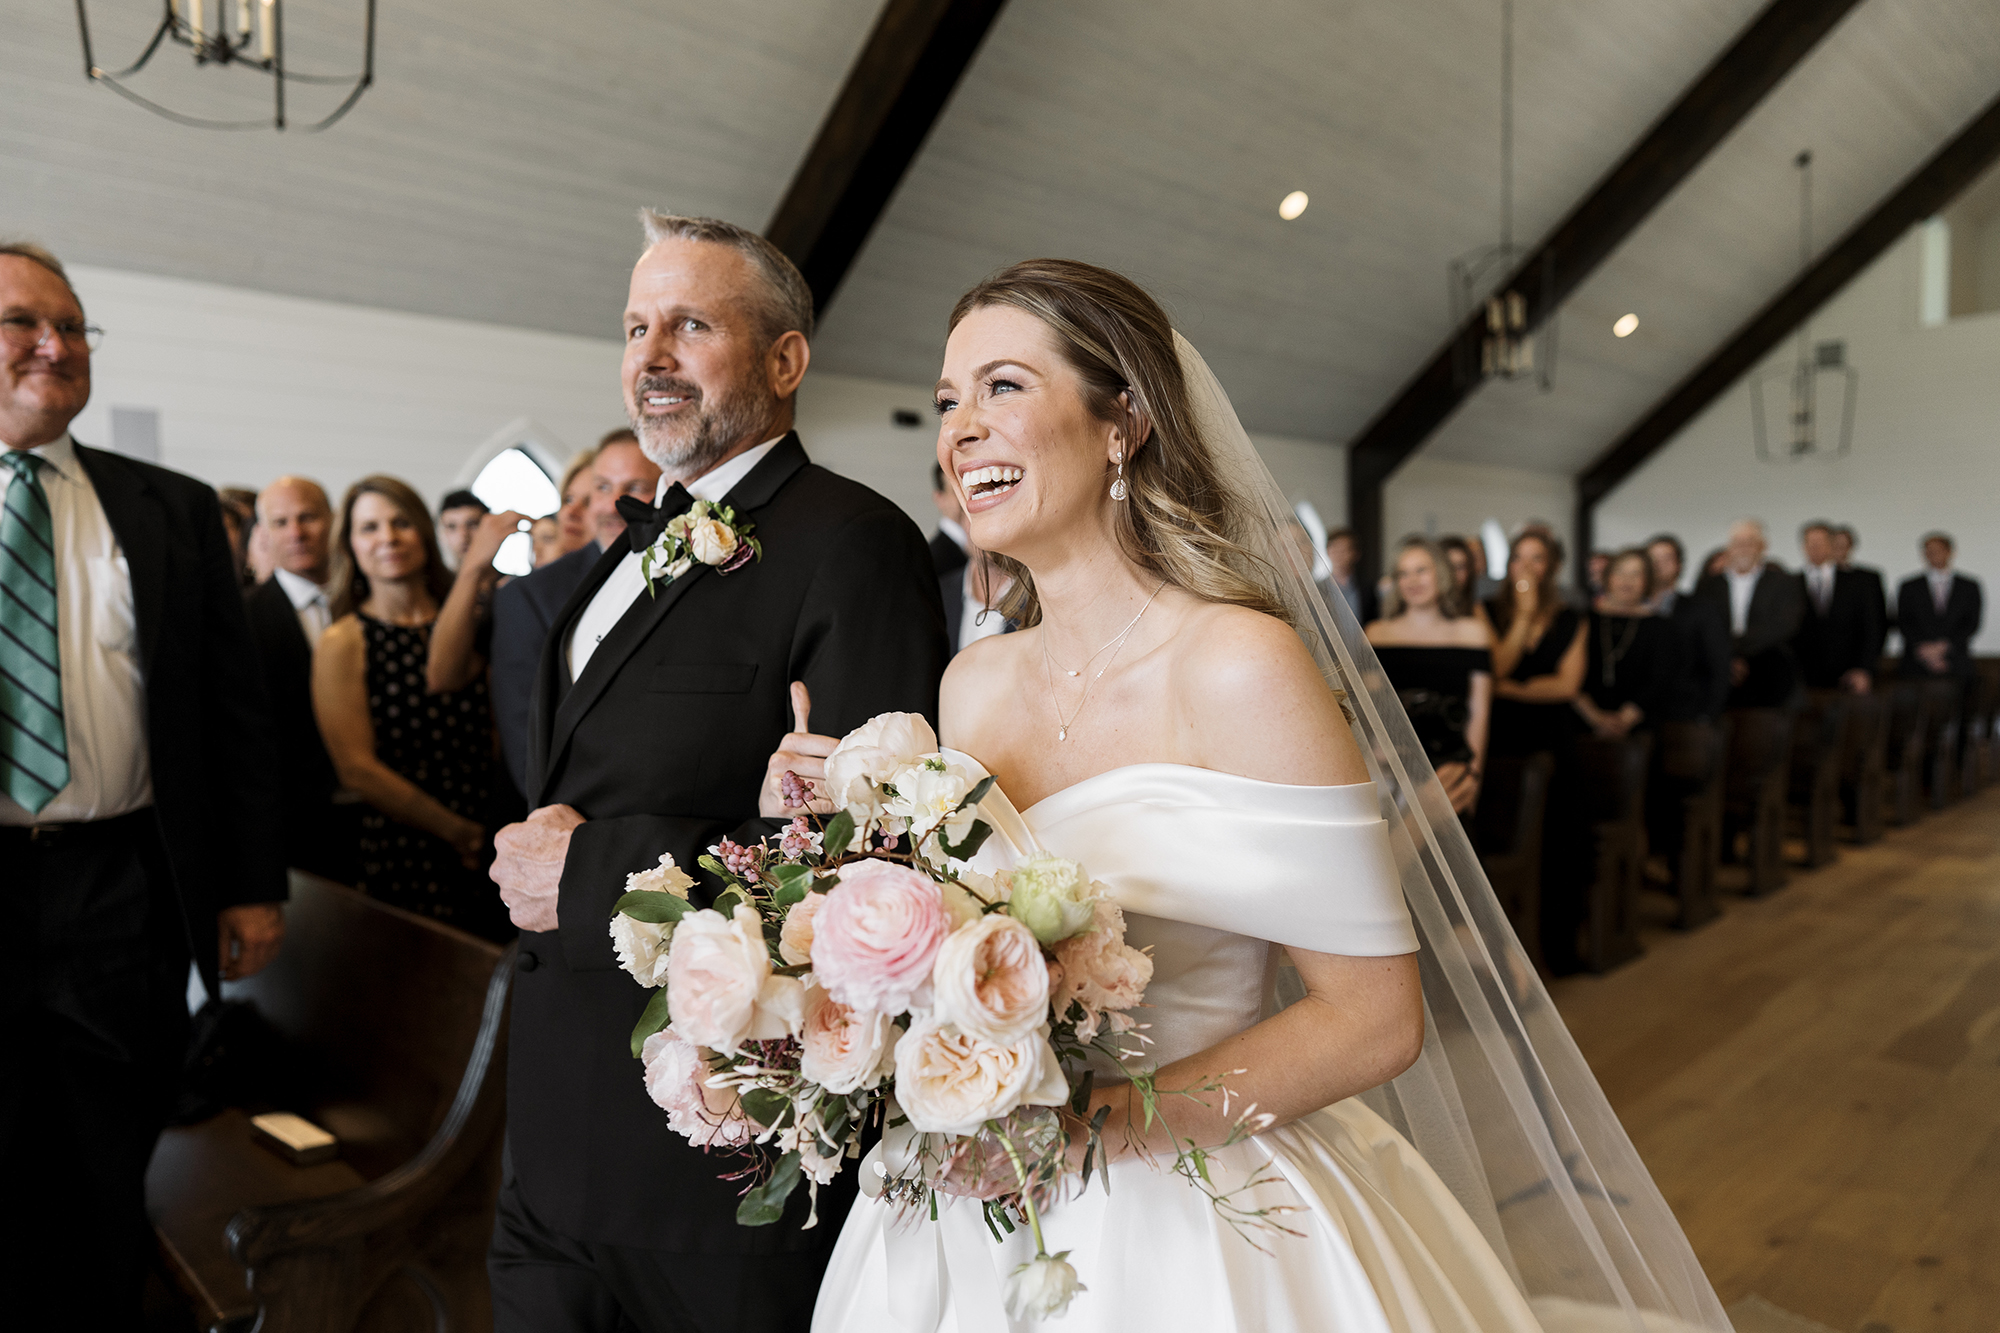 The bride is smiling while her dad walks her down the aisle at her wedding.